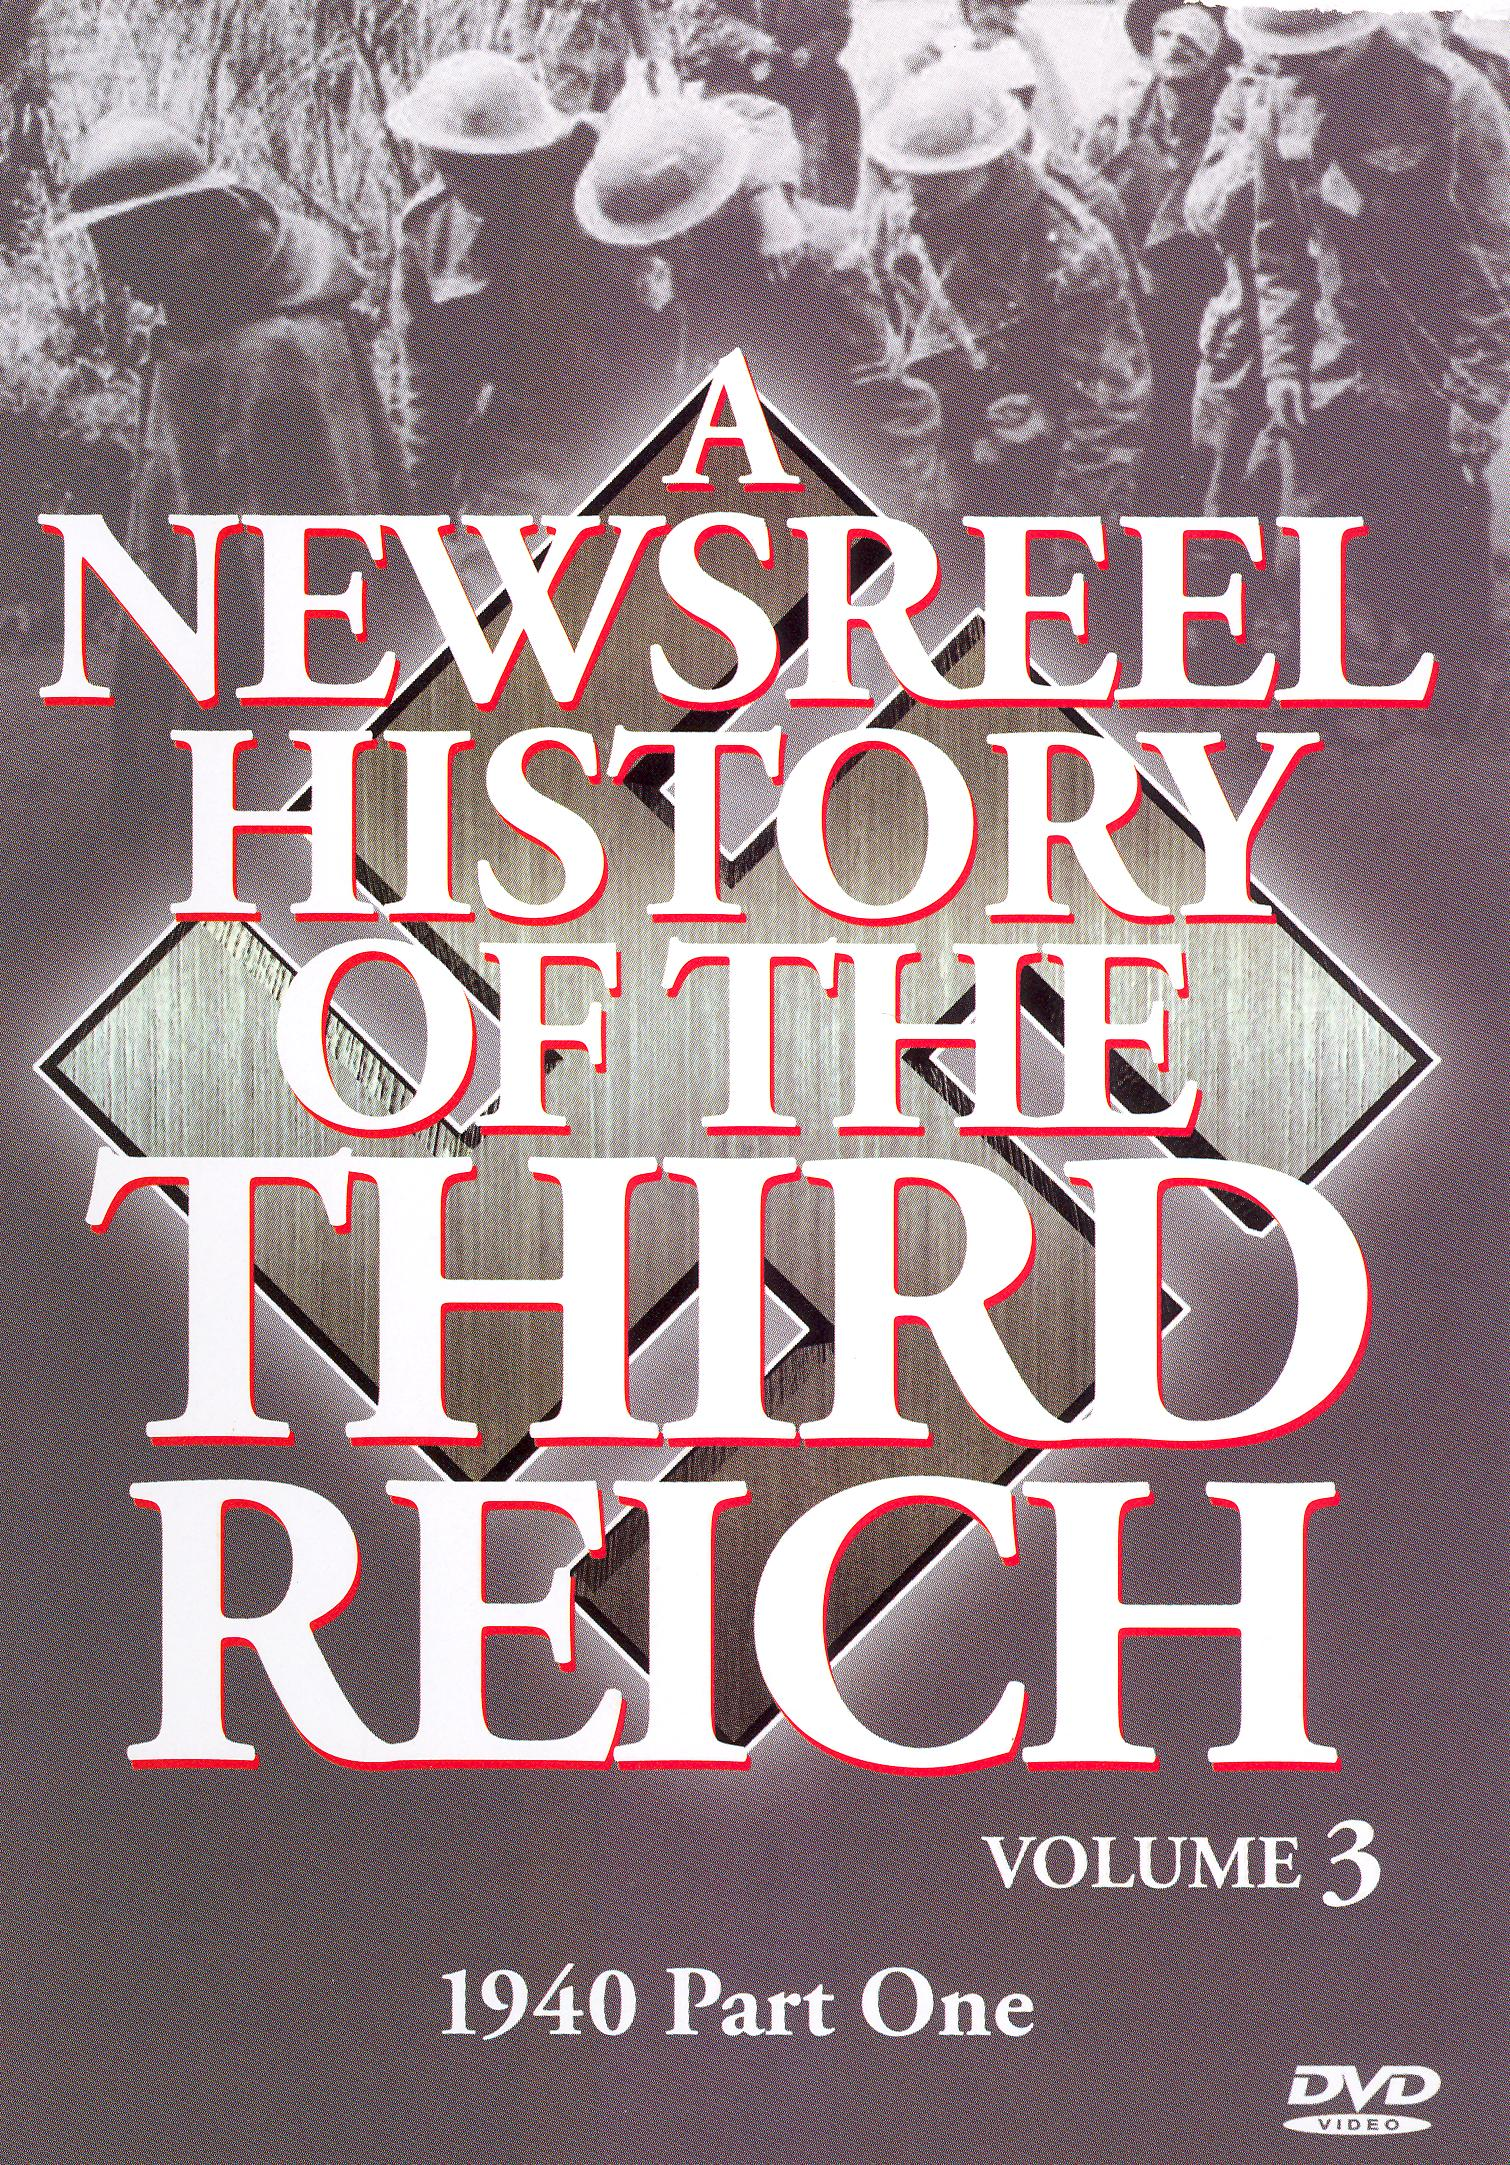 A Newsreel History of the Third Reich, Vol. 3